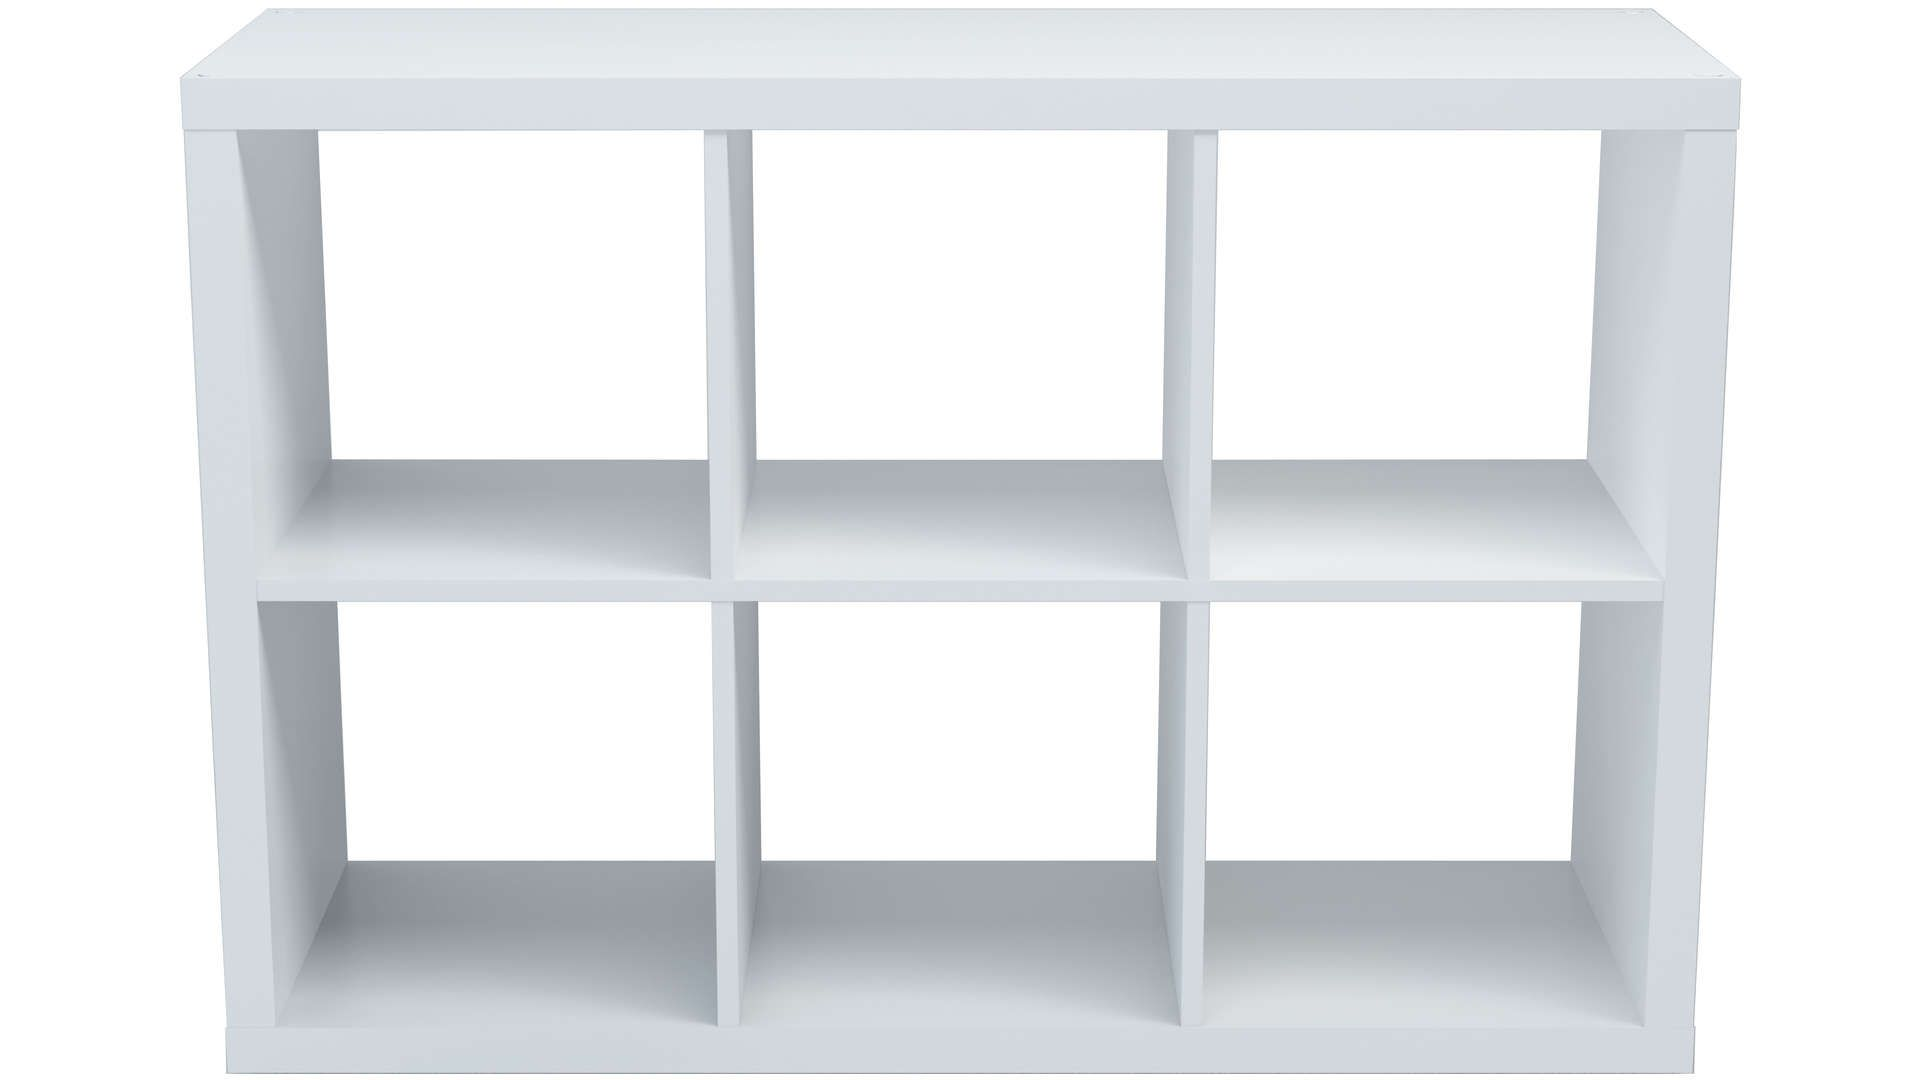 Bibliotheque 6 Cases Alvin Coloris Blanc Bibliotheque Blanche